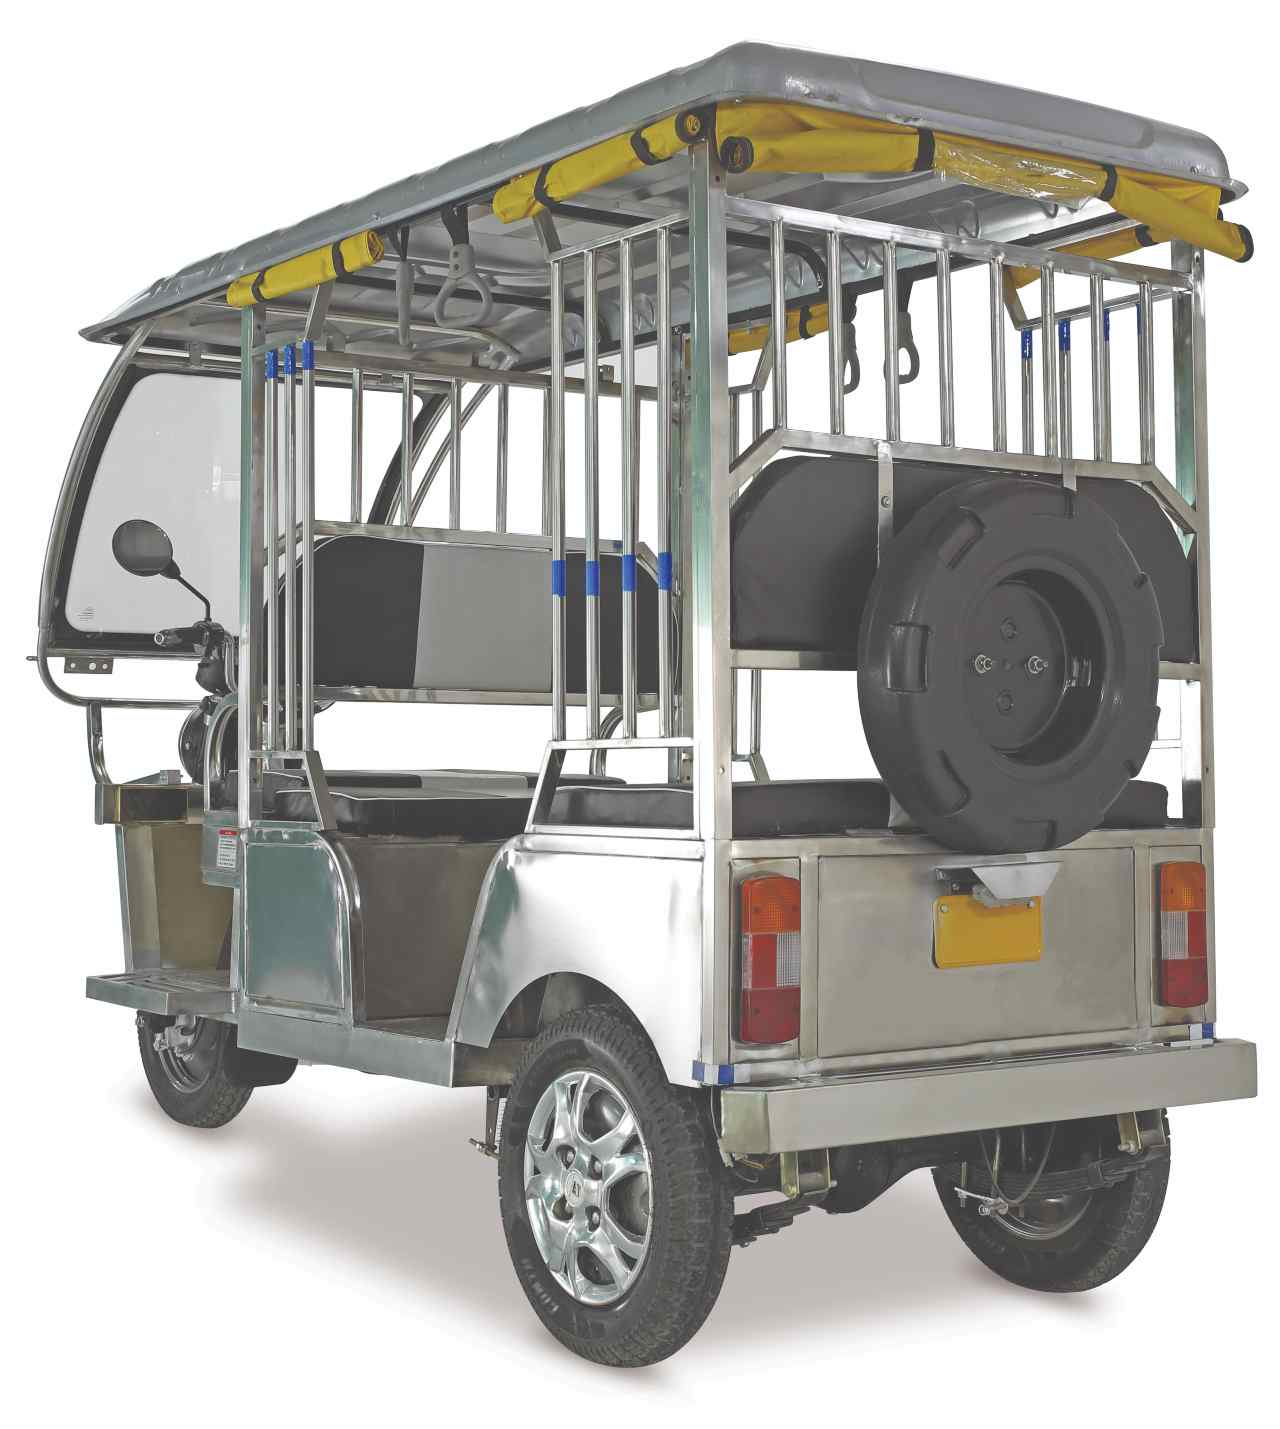 The company claimed that each of these E-rickshaws uses around 80-100 kg of stainless steel, and can be developed in one day. (Image: Jindal Stainless)